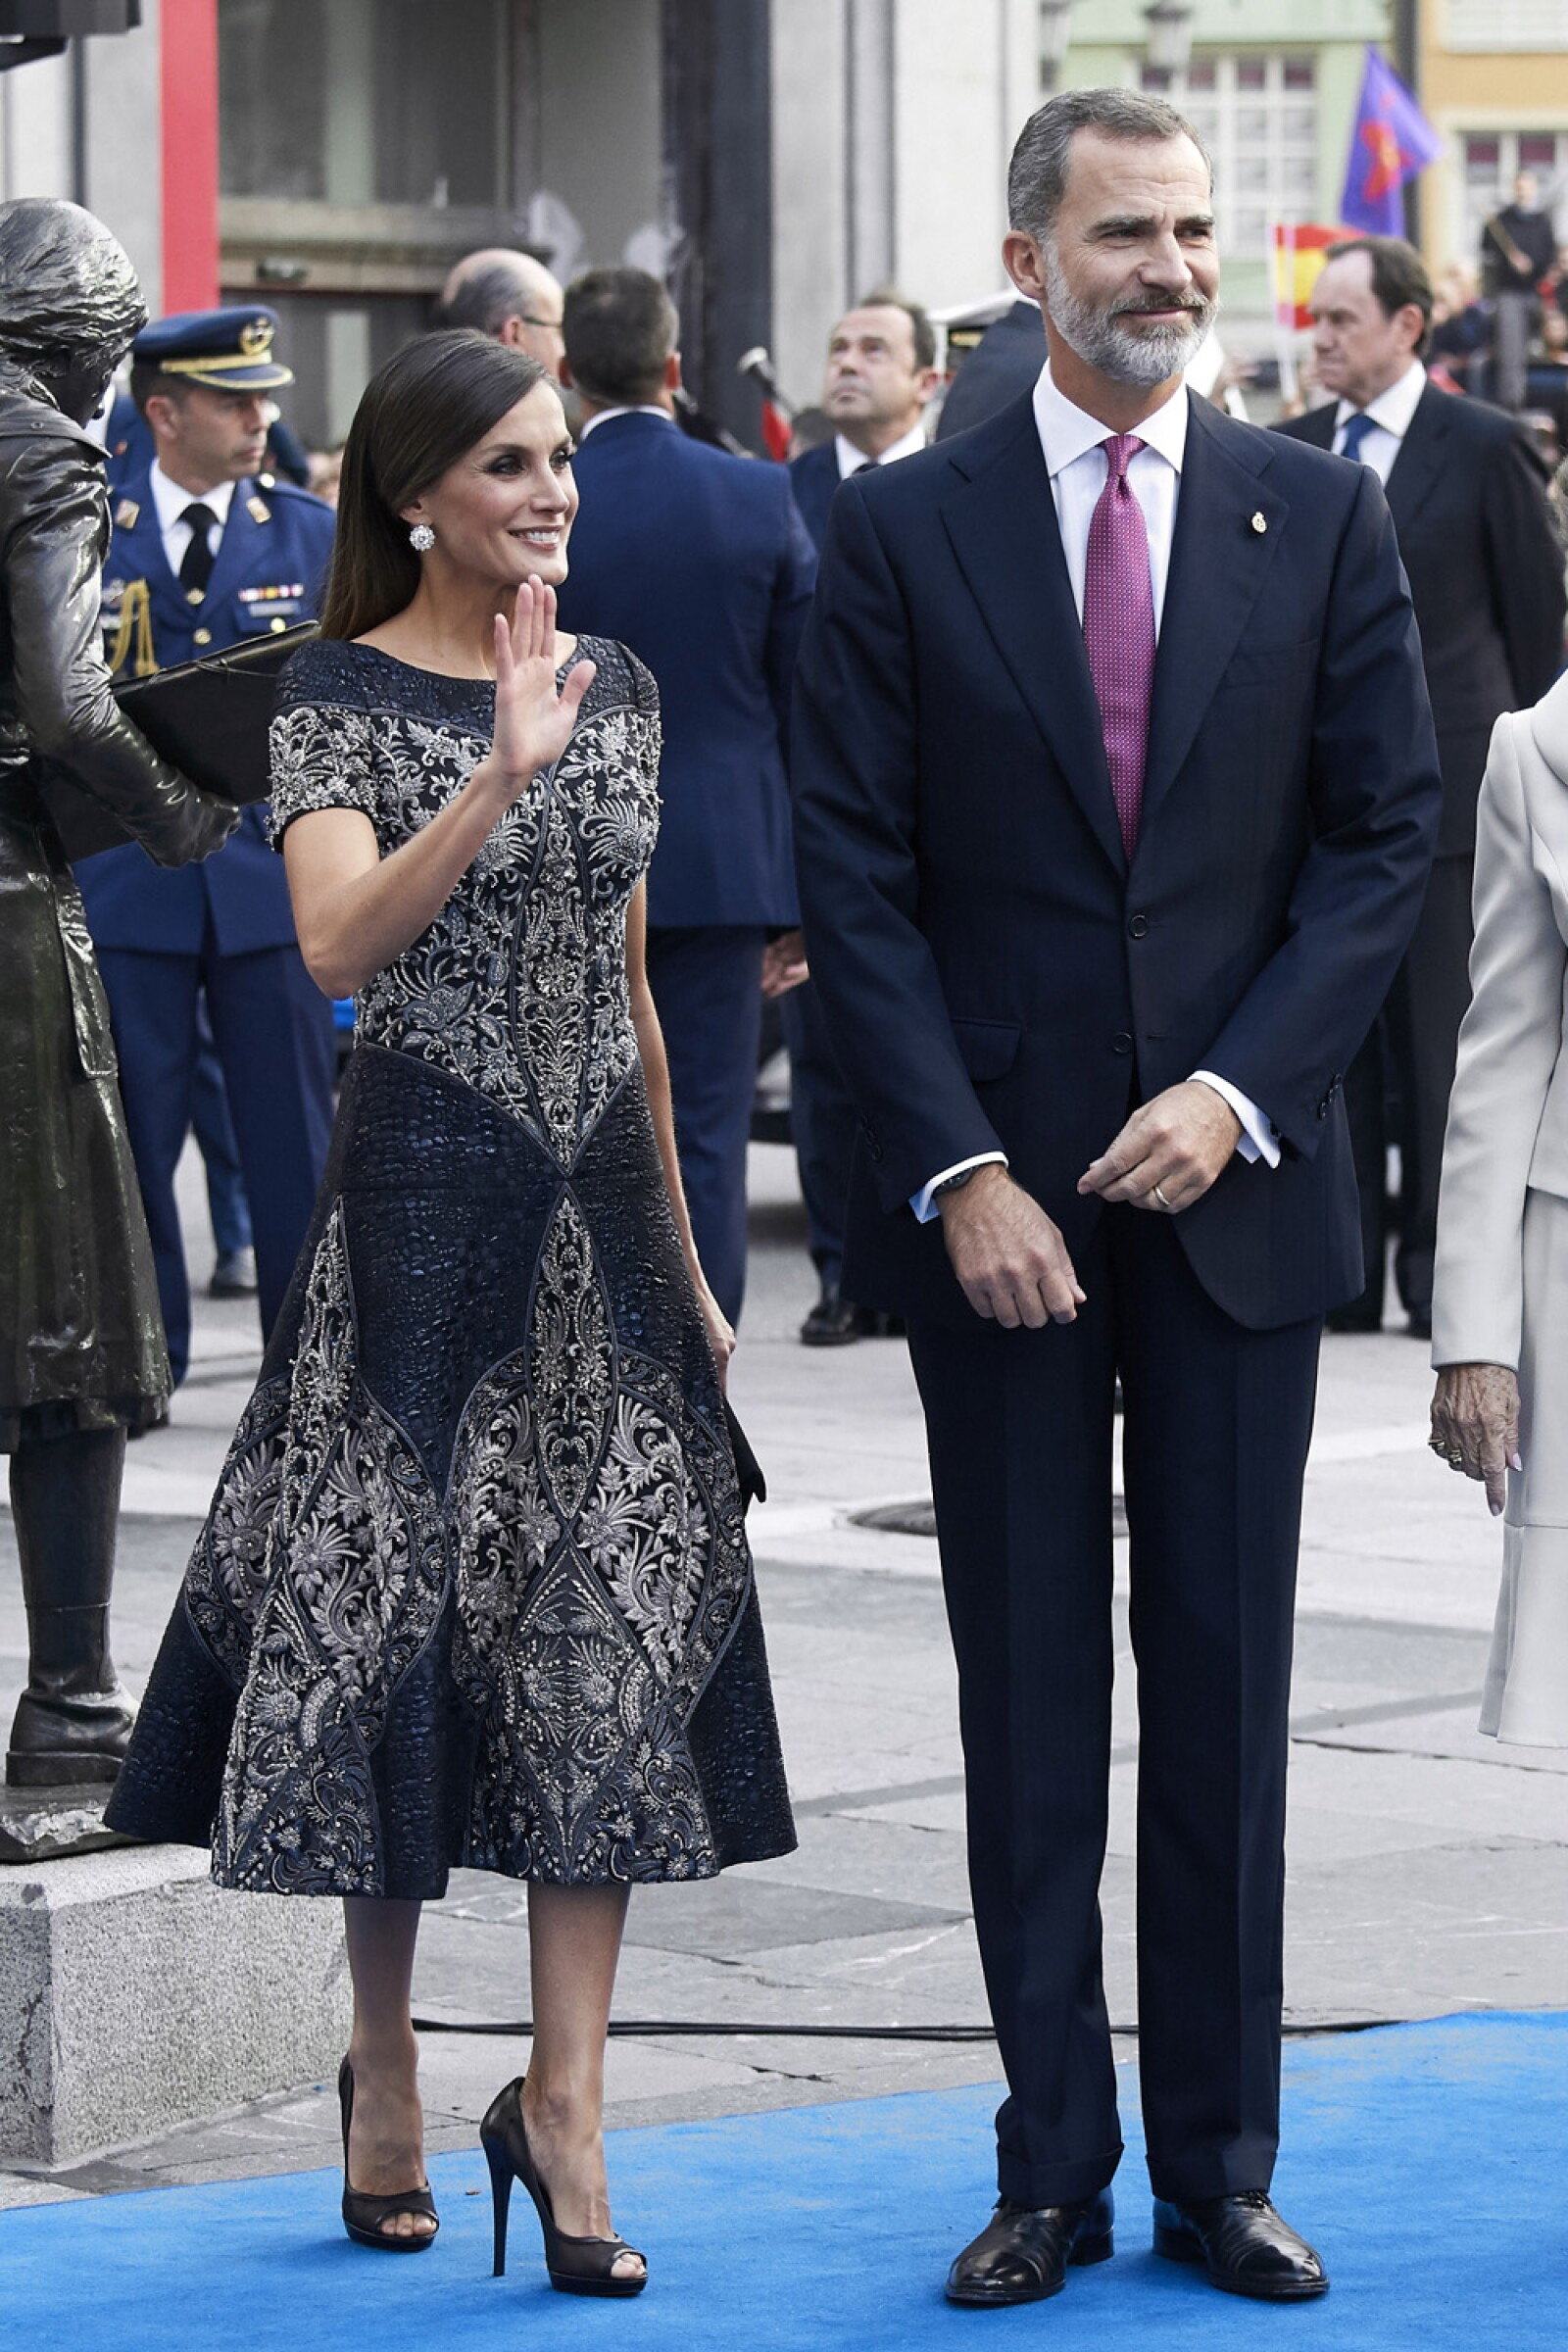 'Princesa De Asturias' Awards 2018 - Day 2